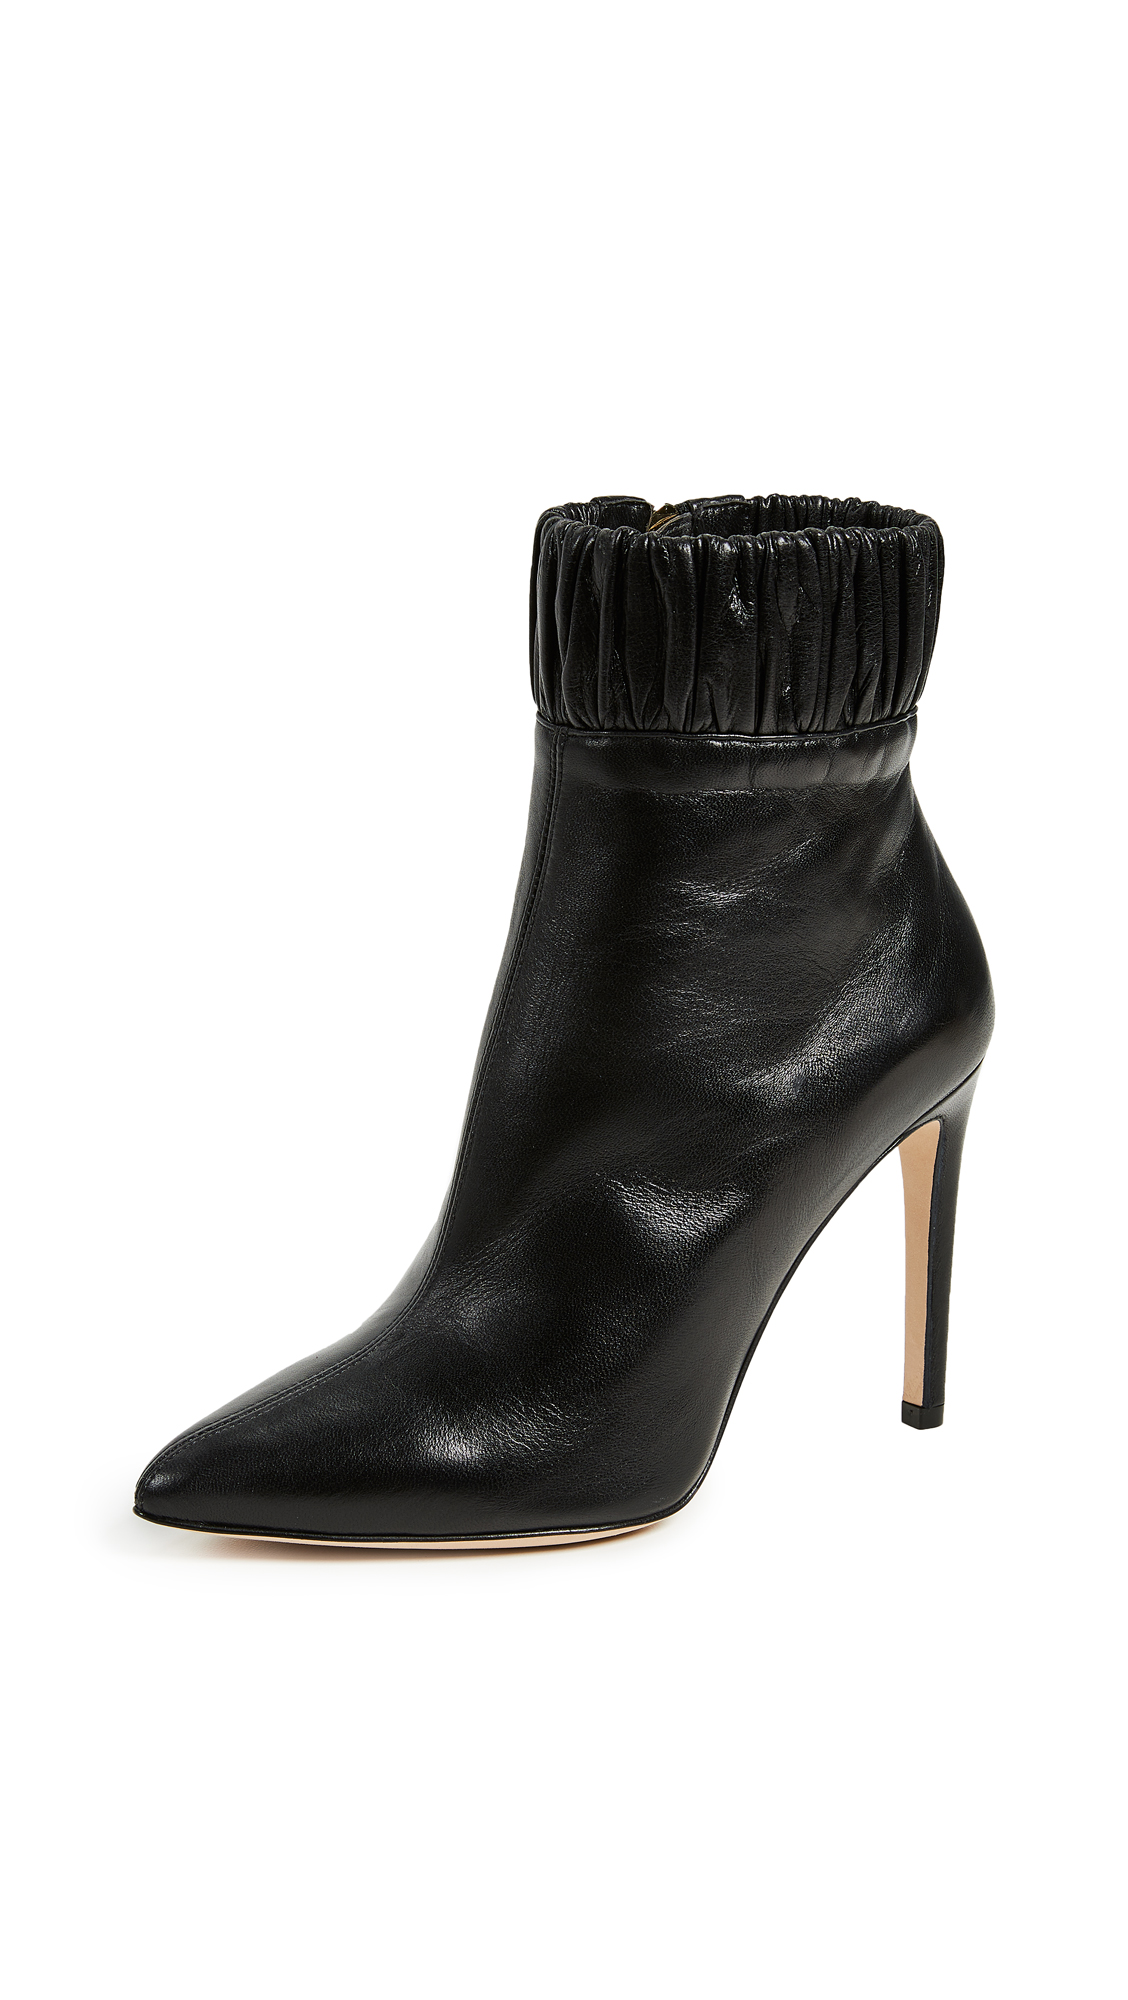 Chloe Gosselin Maud Booties - Black